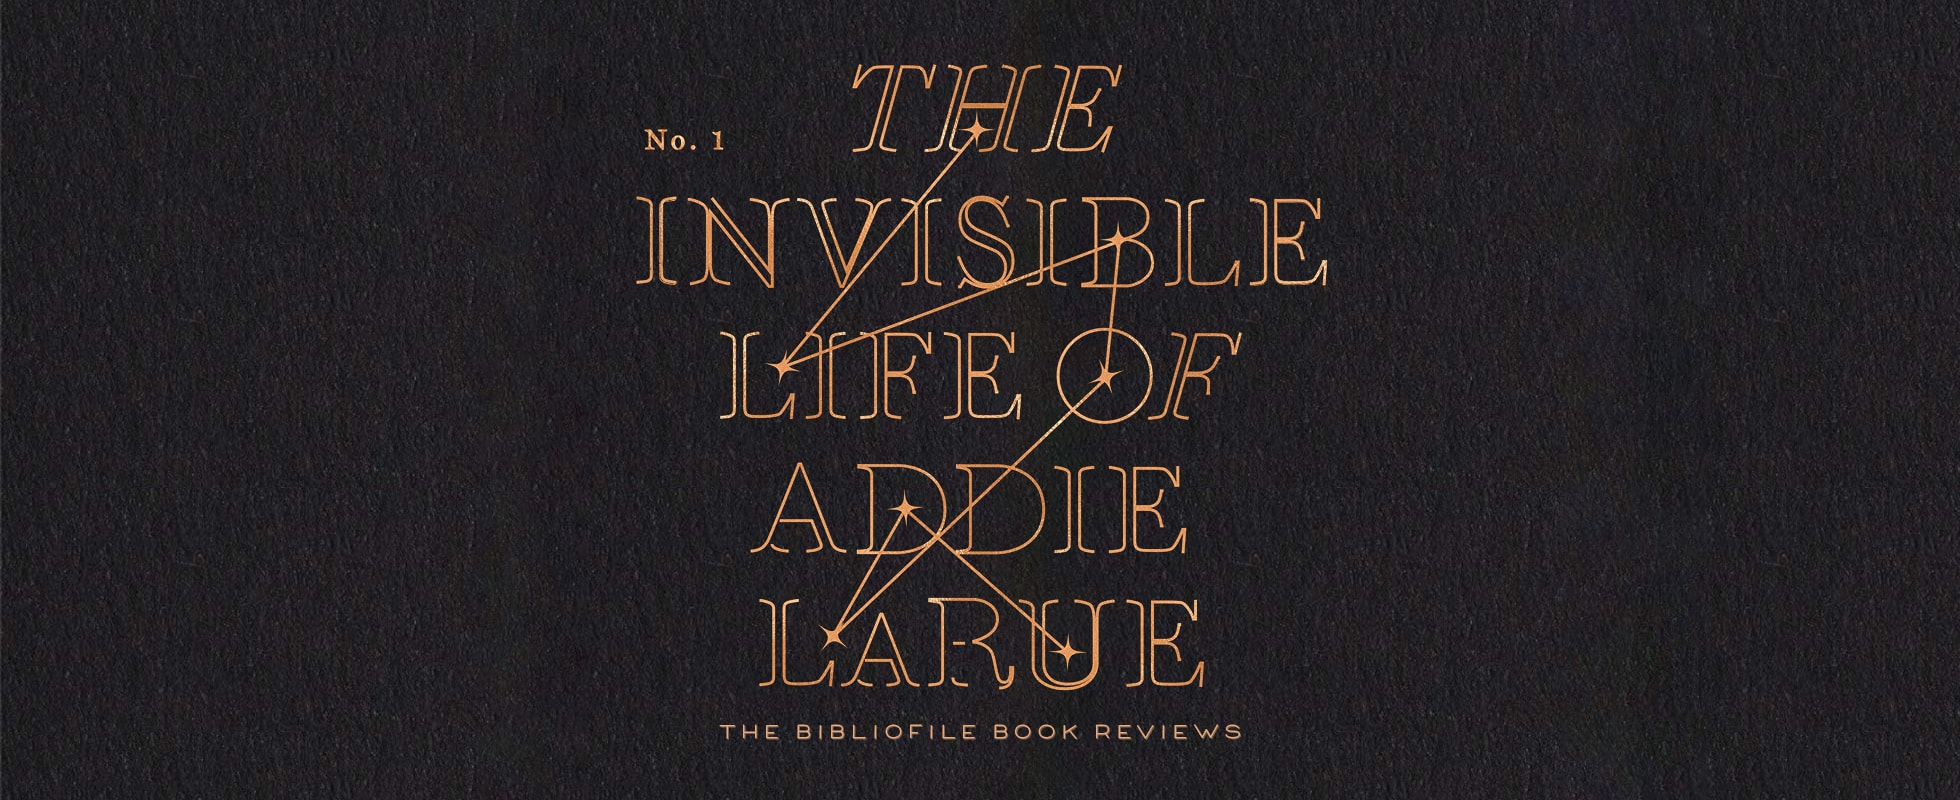 the invisible life of addie larue by ve v.e. schwab summary synopsis spoilers book review